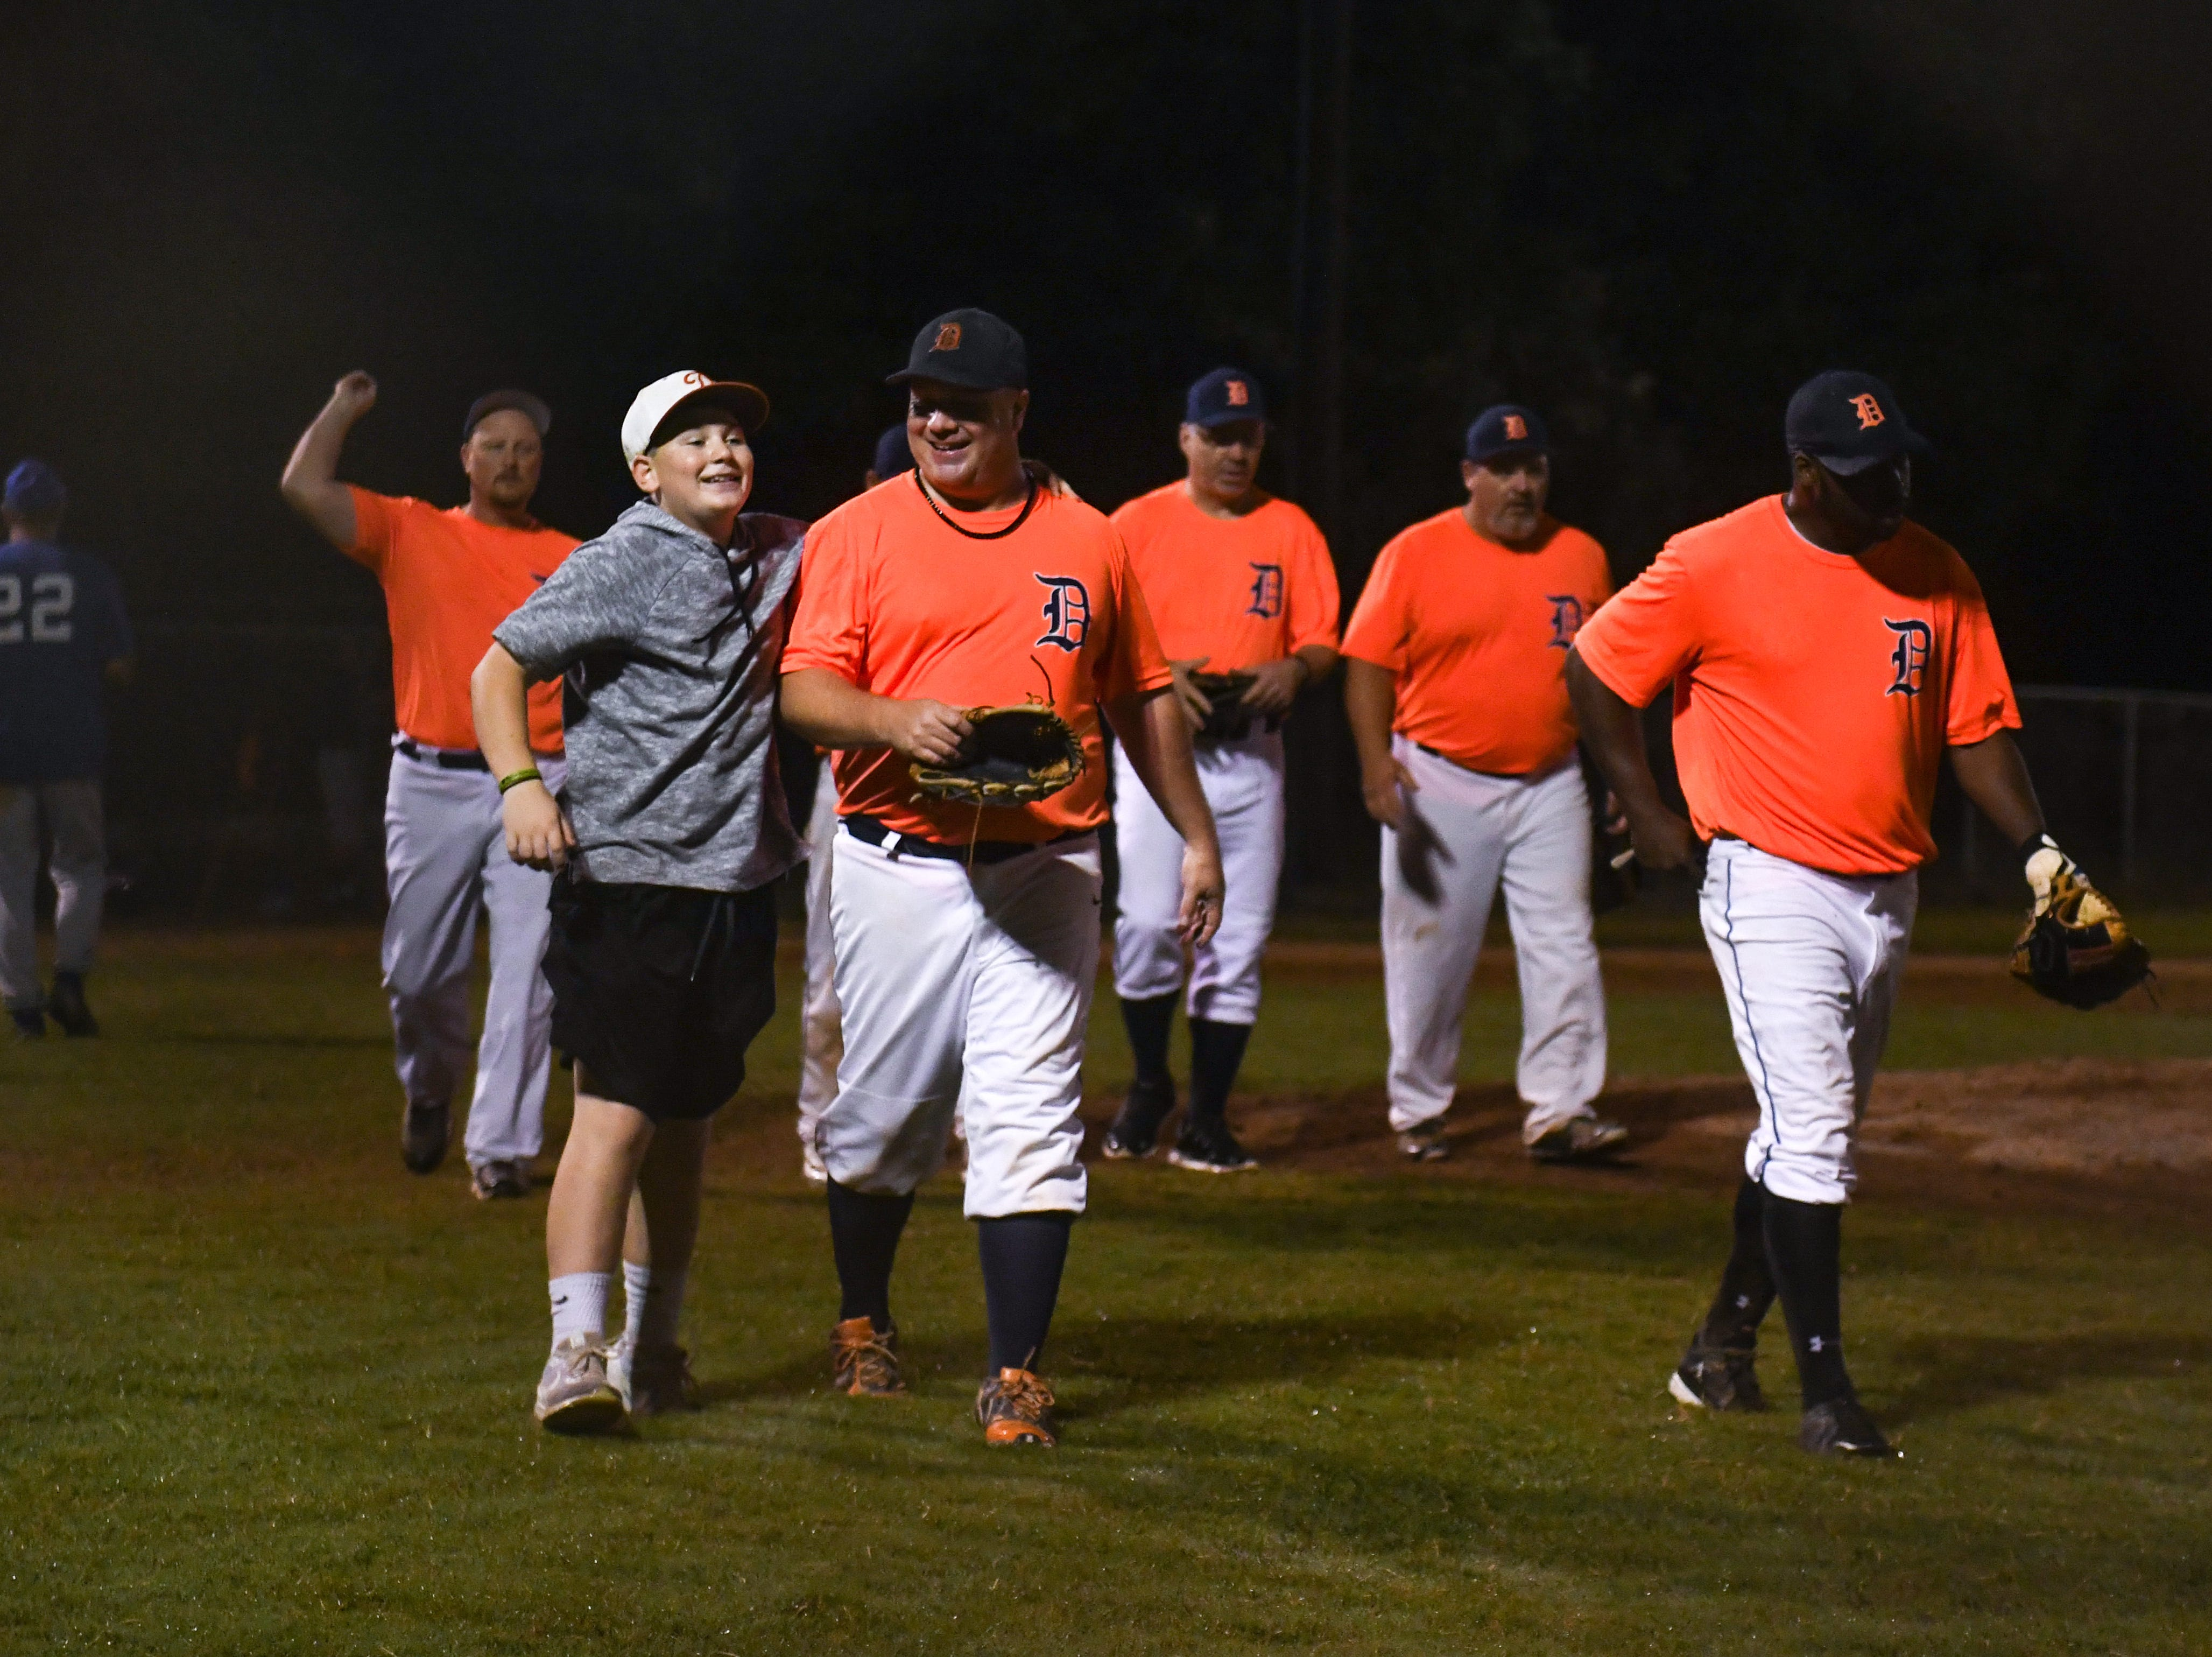 Jerry Pierson and son Tucker Pierson celebrate after winning a game in the new Ty Cobb Senior Baseball League in Salisbury on Tuesday, Oct 9, 2018.